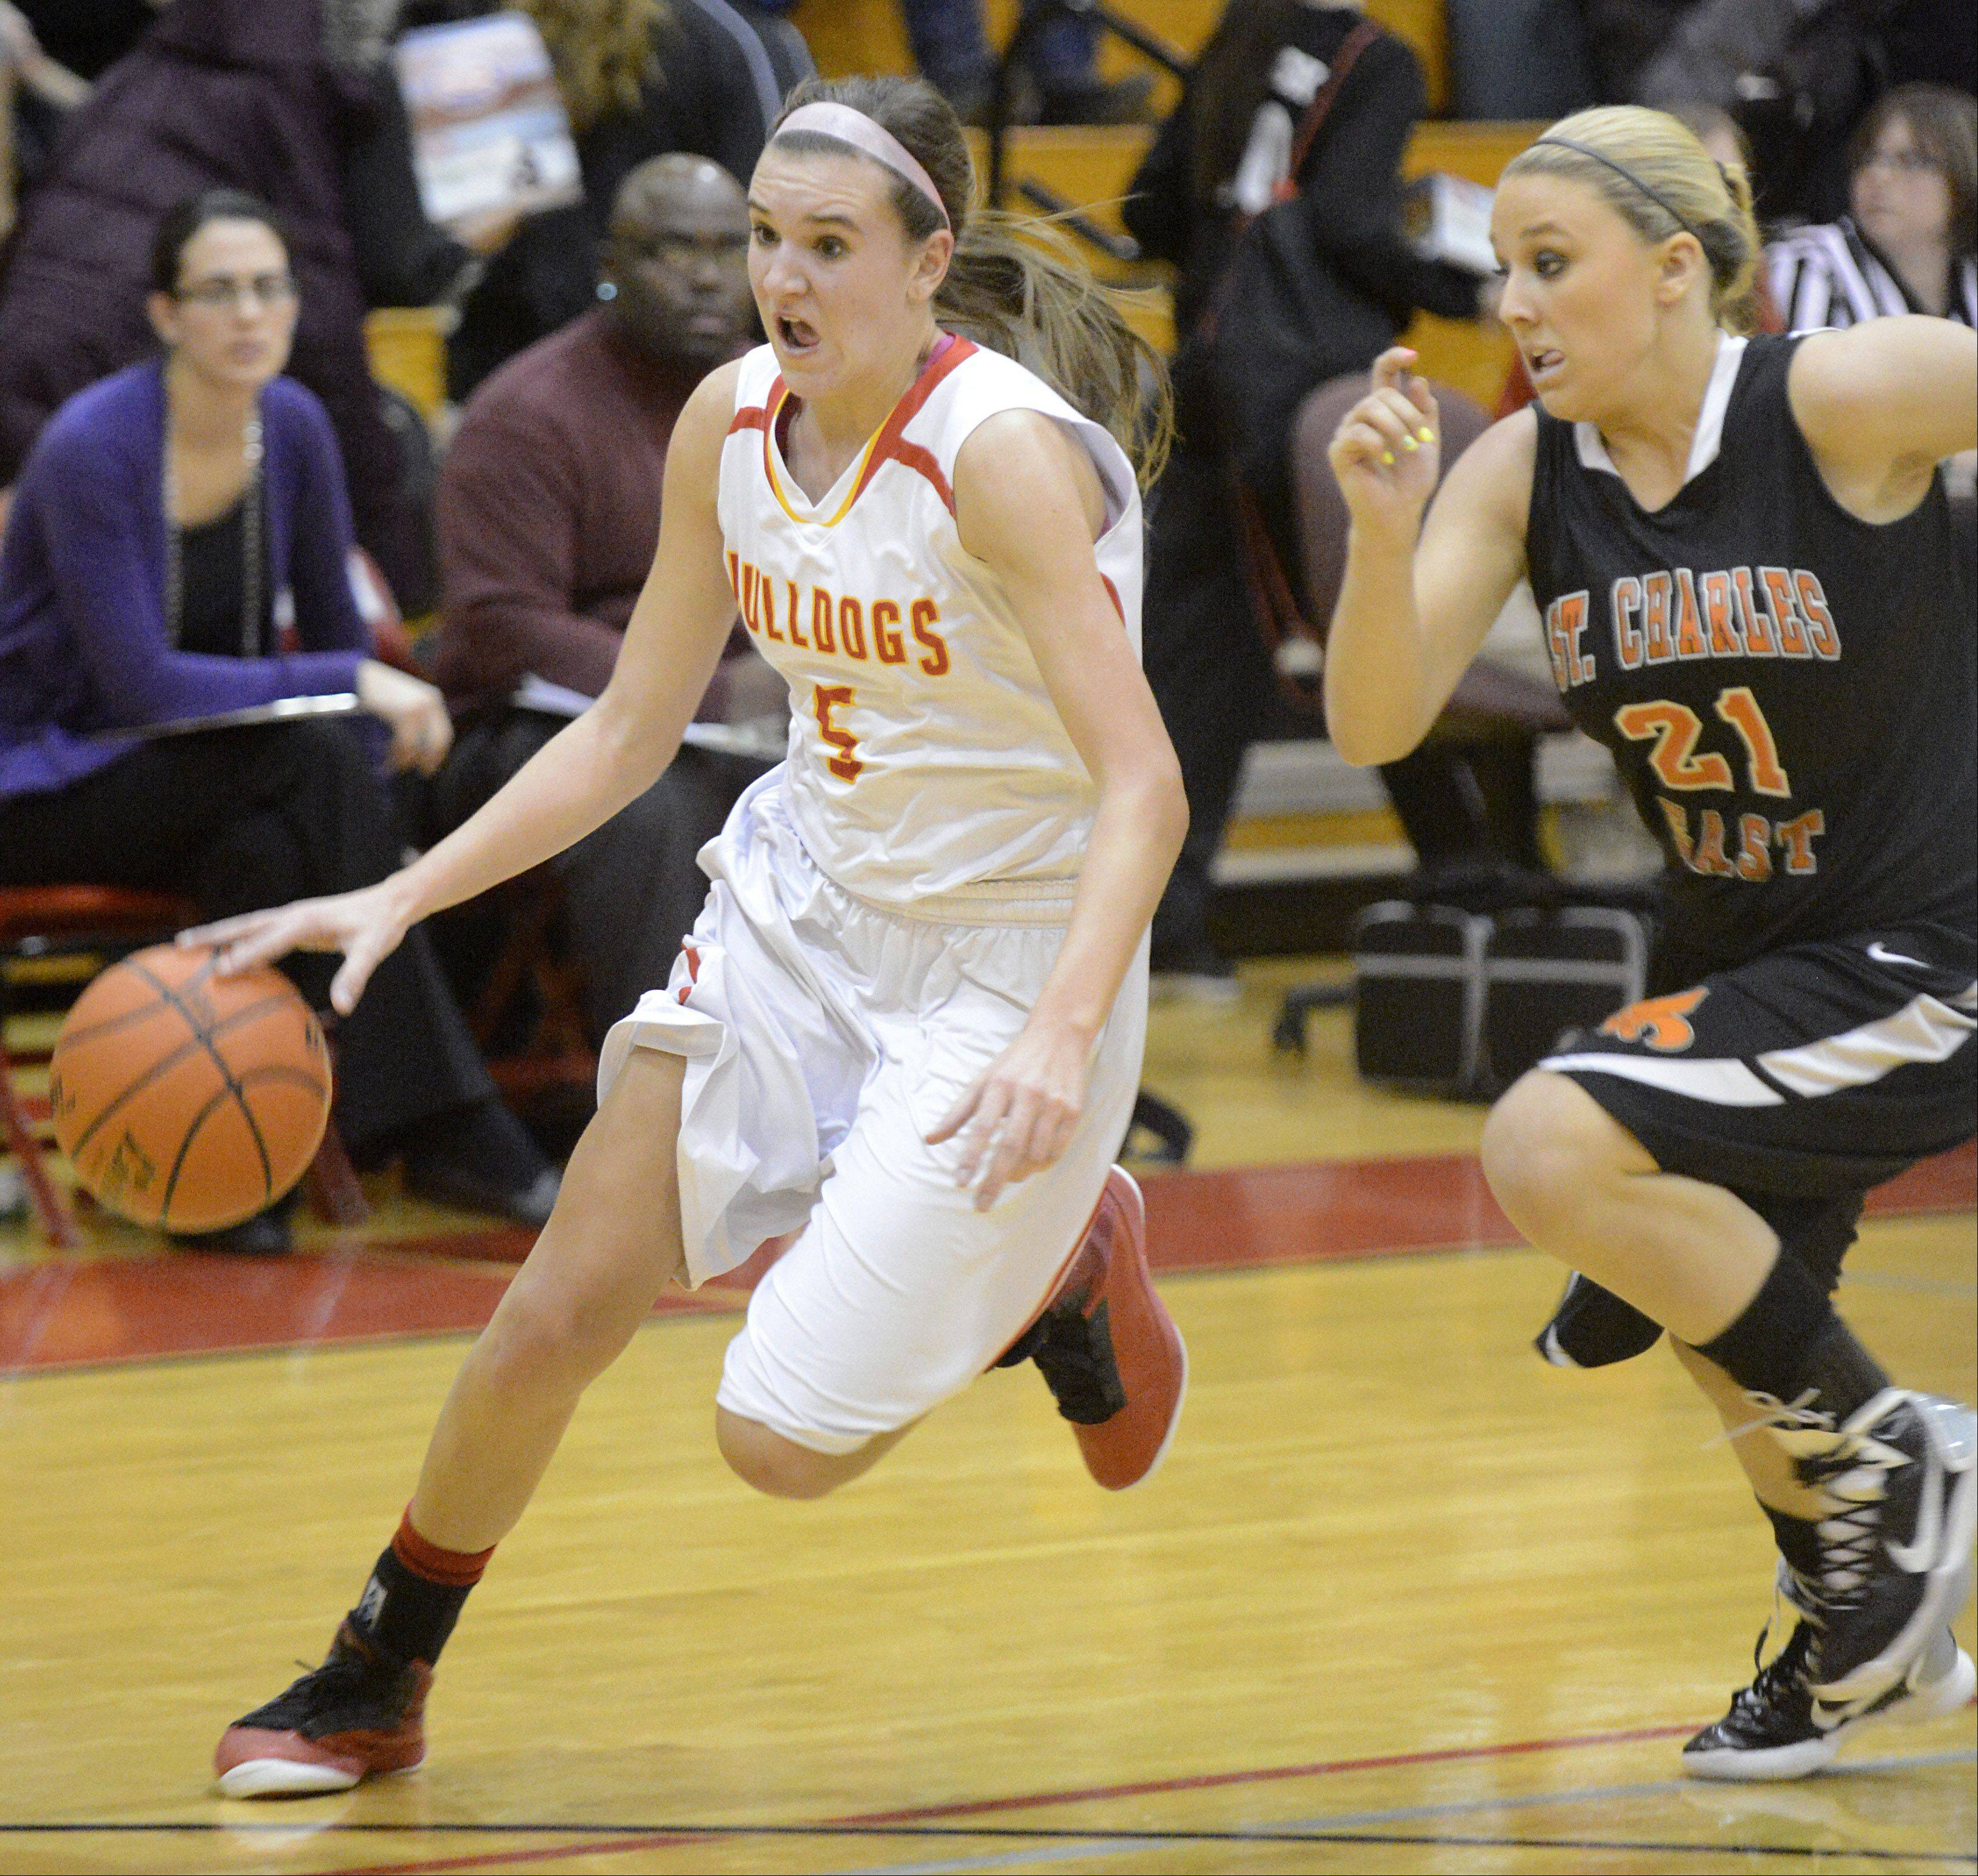 Batavia's Liza Fruendt speeds past St. Charles East's MacKenzie Meadows toward the hoop in the second quarter on Tuesday, January 8.